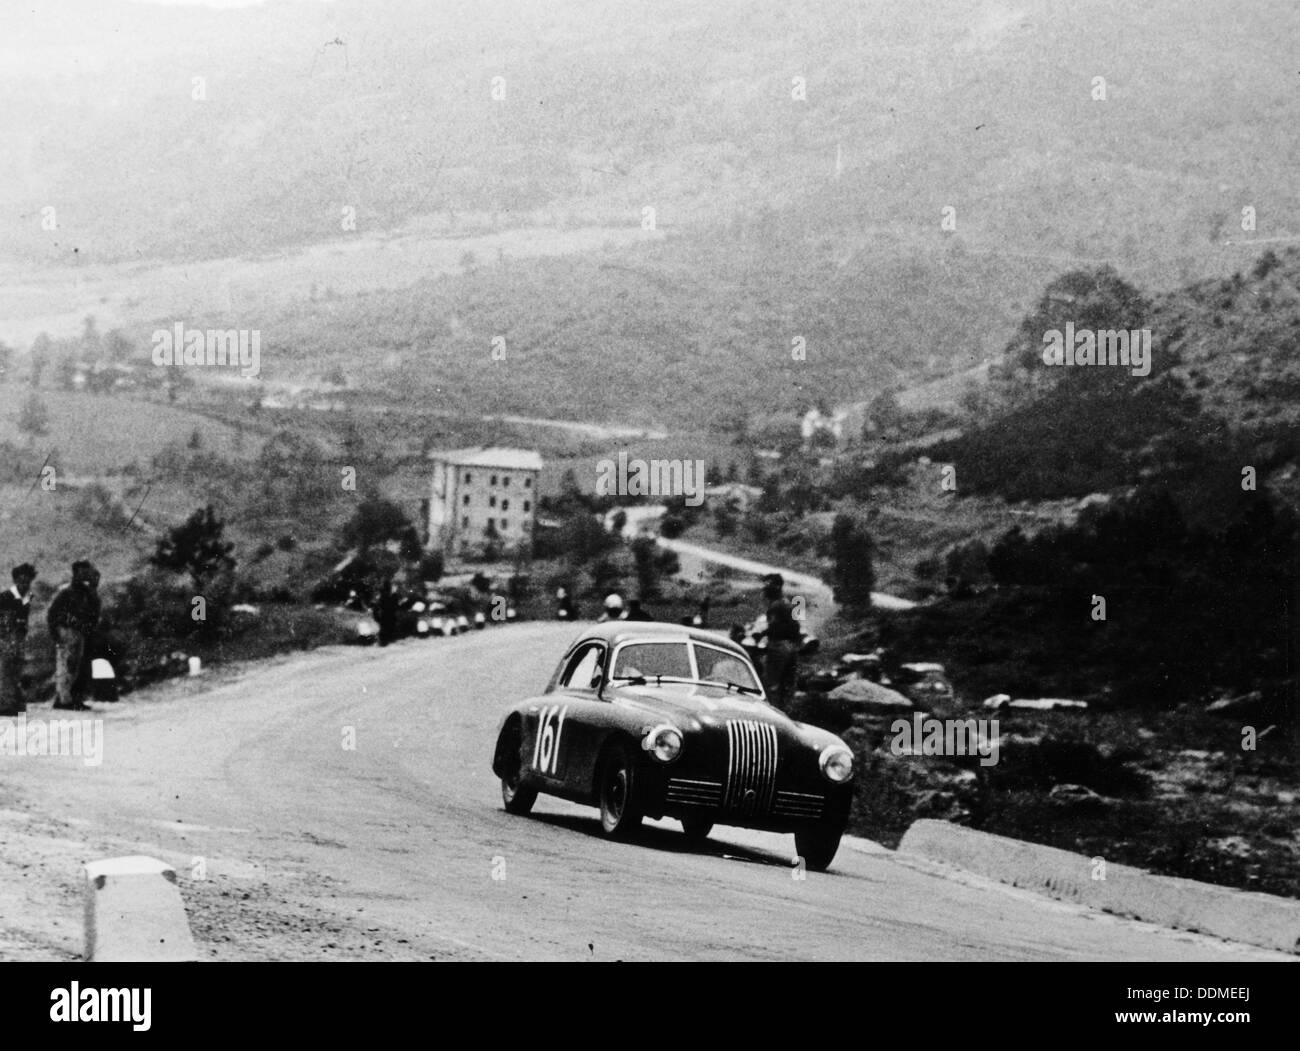 Fiat 1100S Berlinetta competing in the Mille Miglia, Italy, 1947. - Stock Image